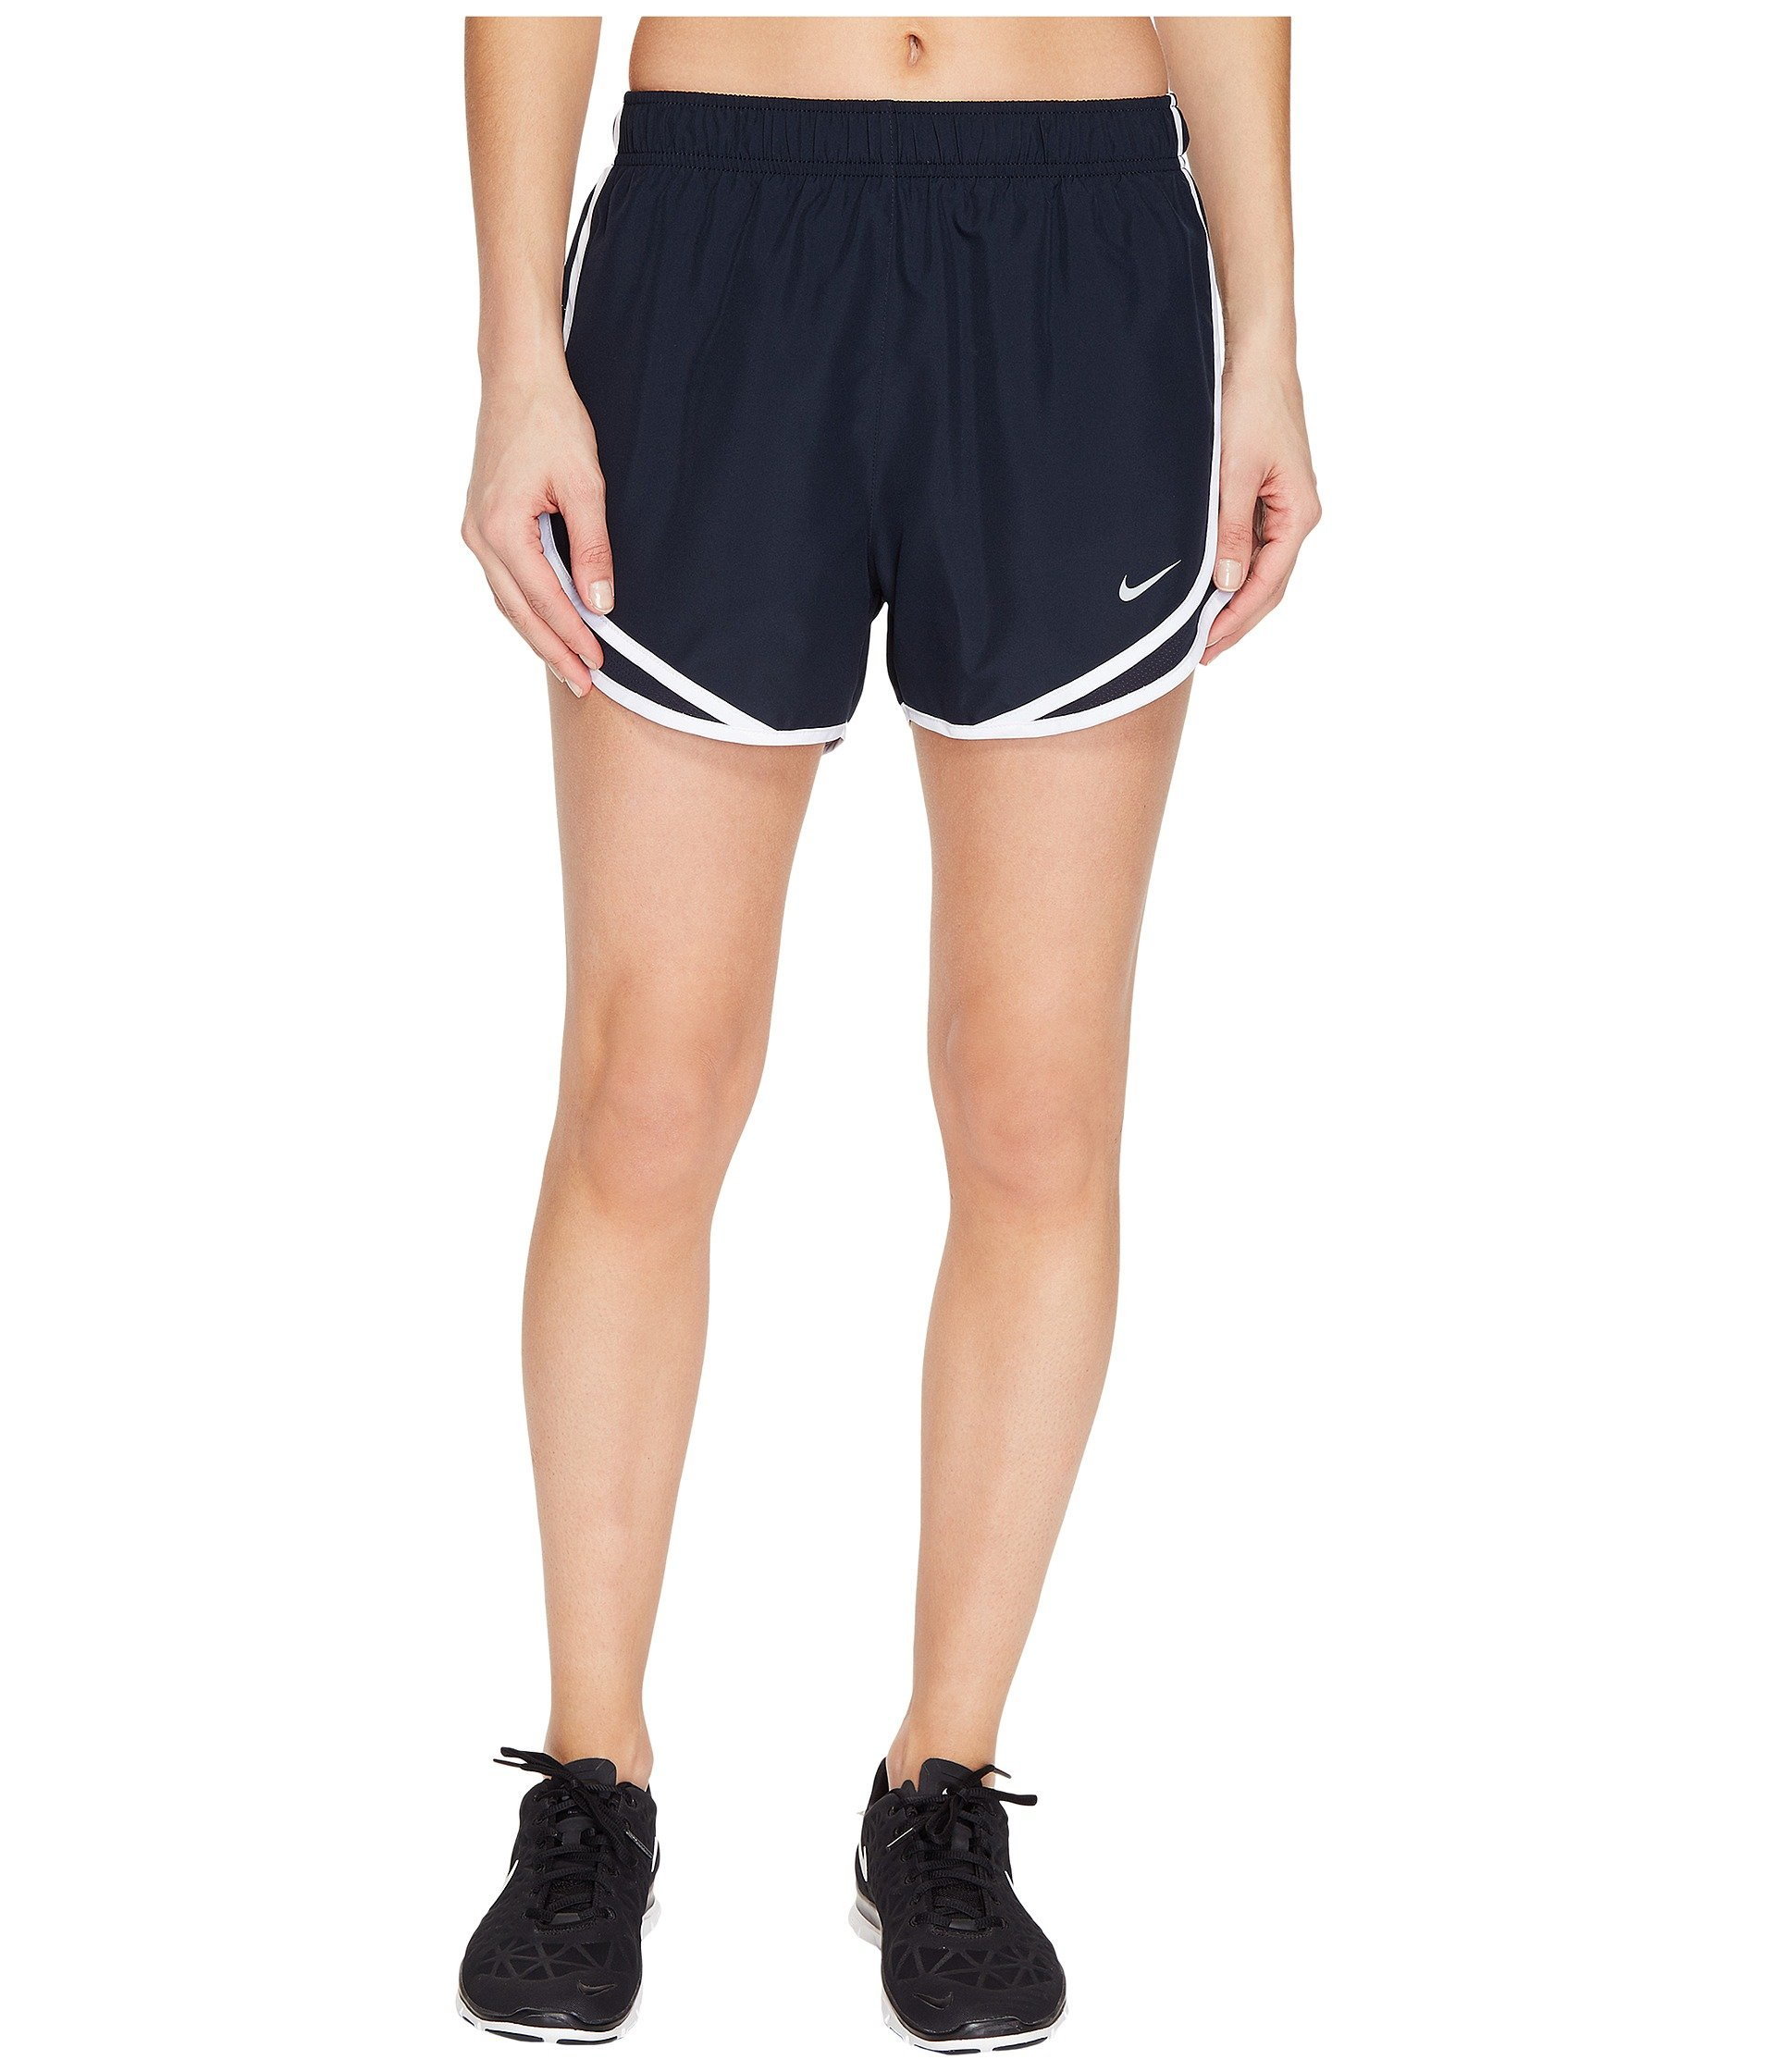 Nike Women's Dry Tempo Running Short Dark Obsidian/Wolf Grey Size Medium by Nike